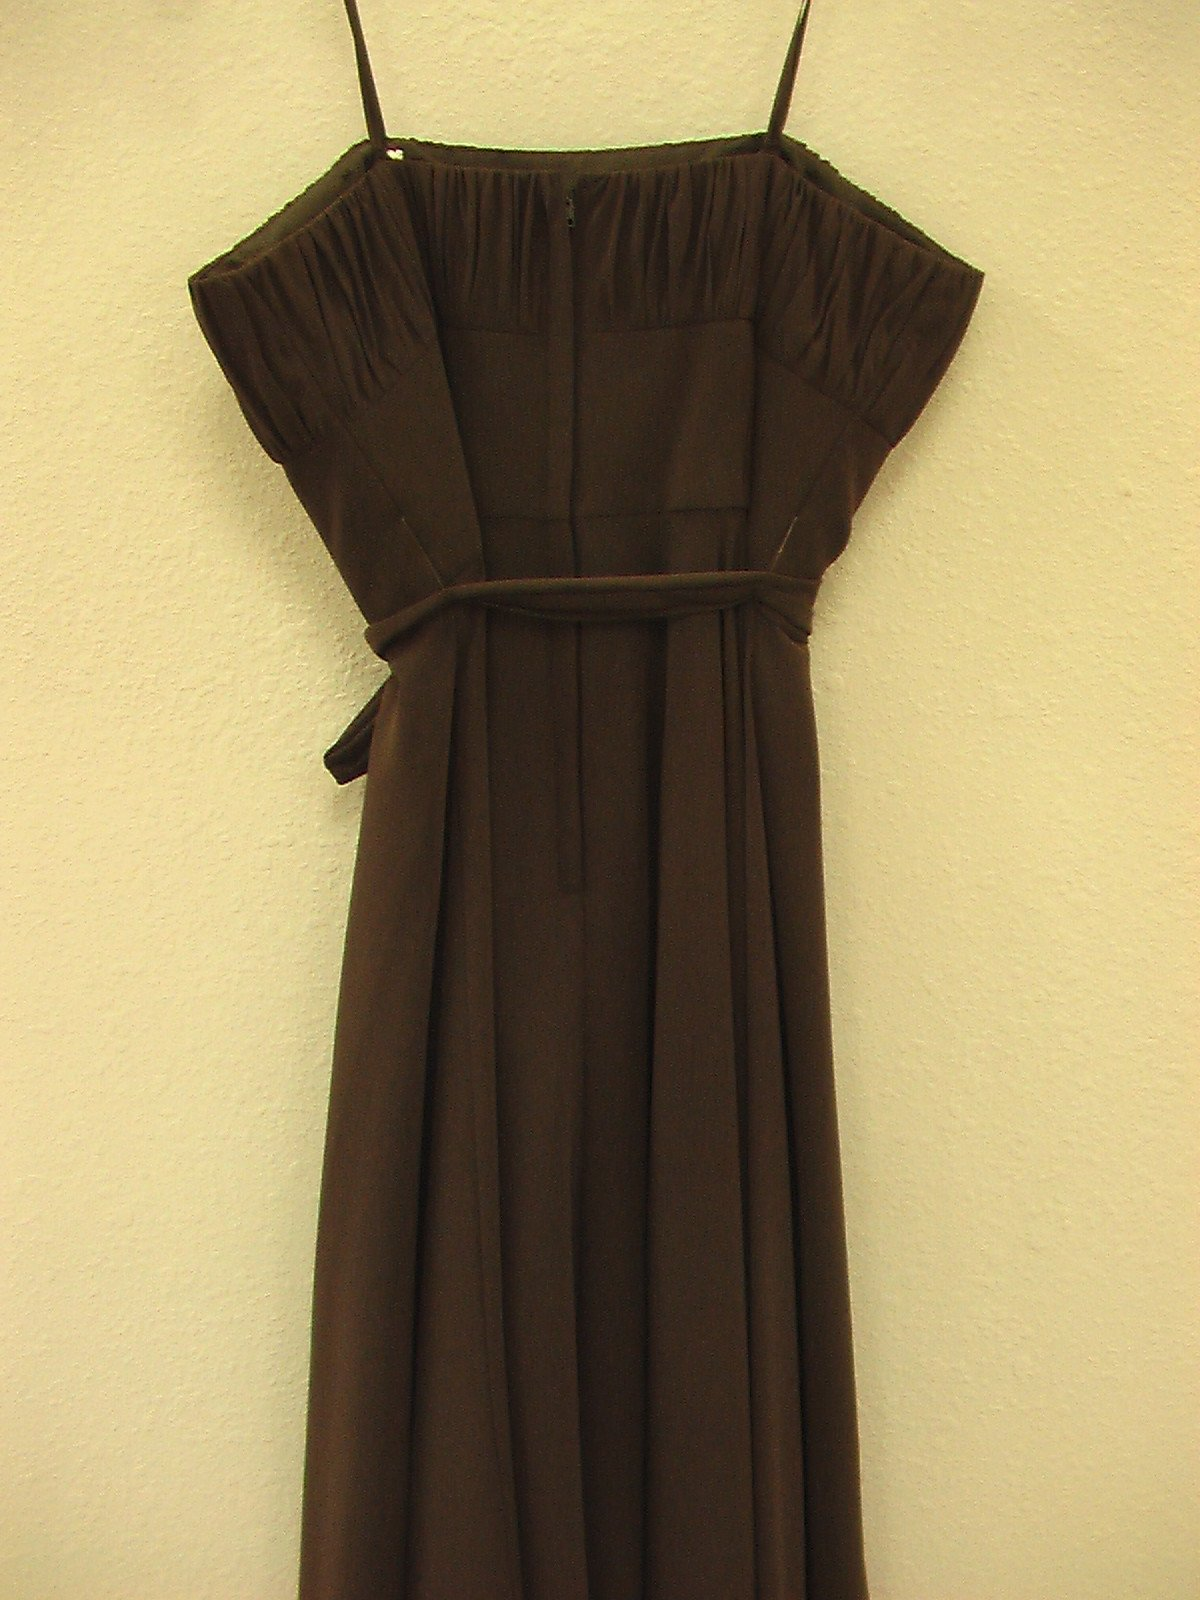 Mori Lee 735 Chocolate size 12 In Stock Bridesmaid Dress - Tom's Bridal